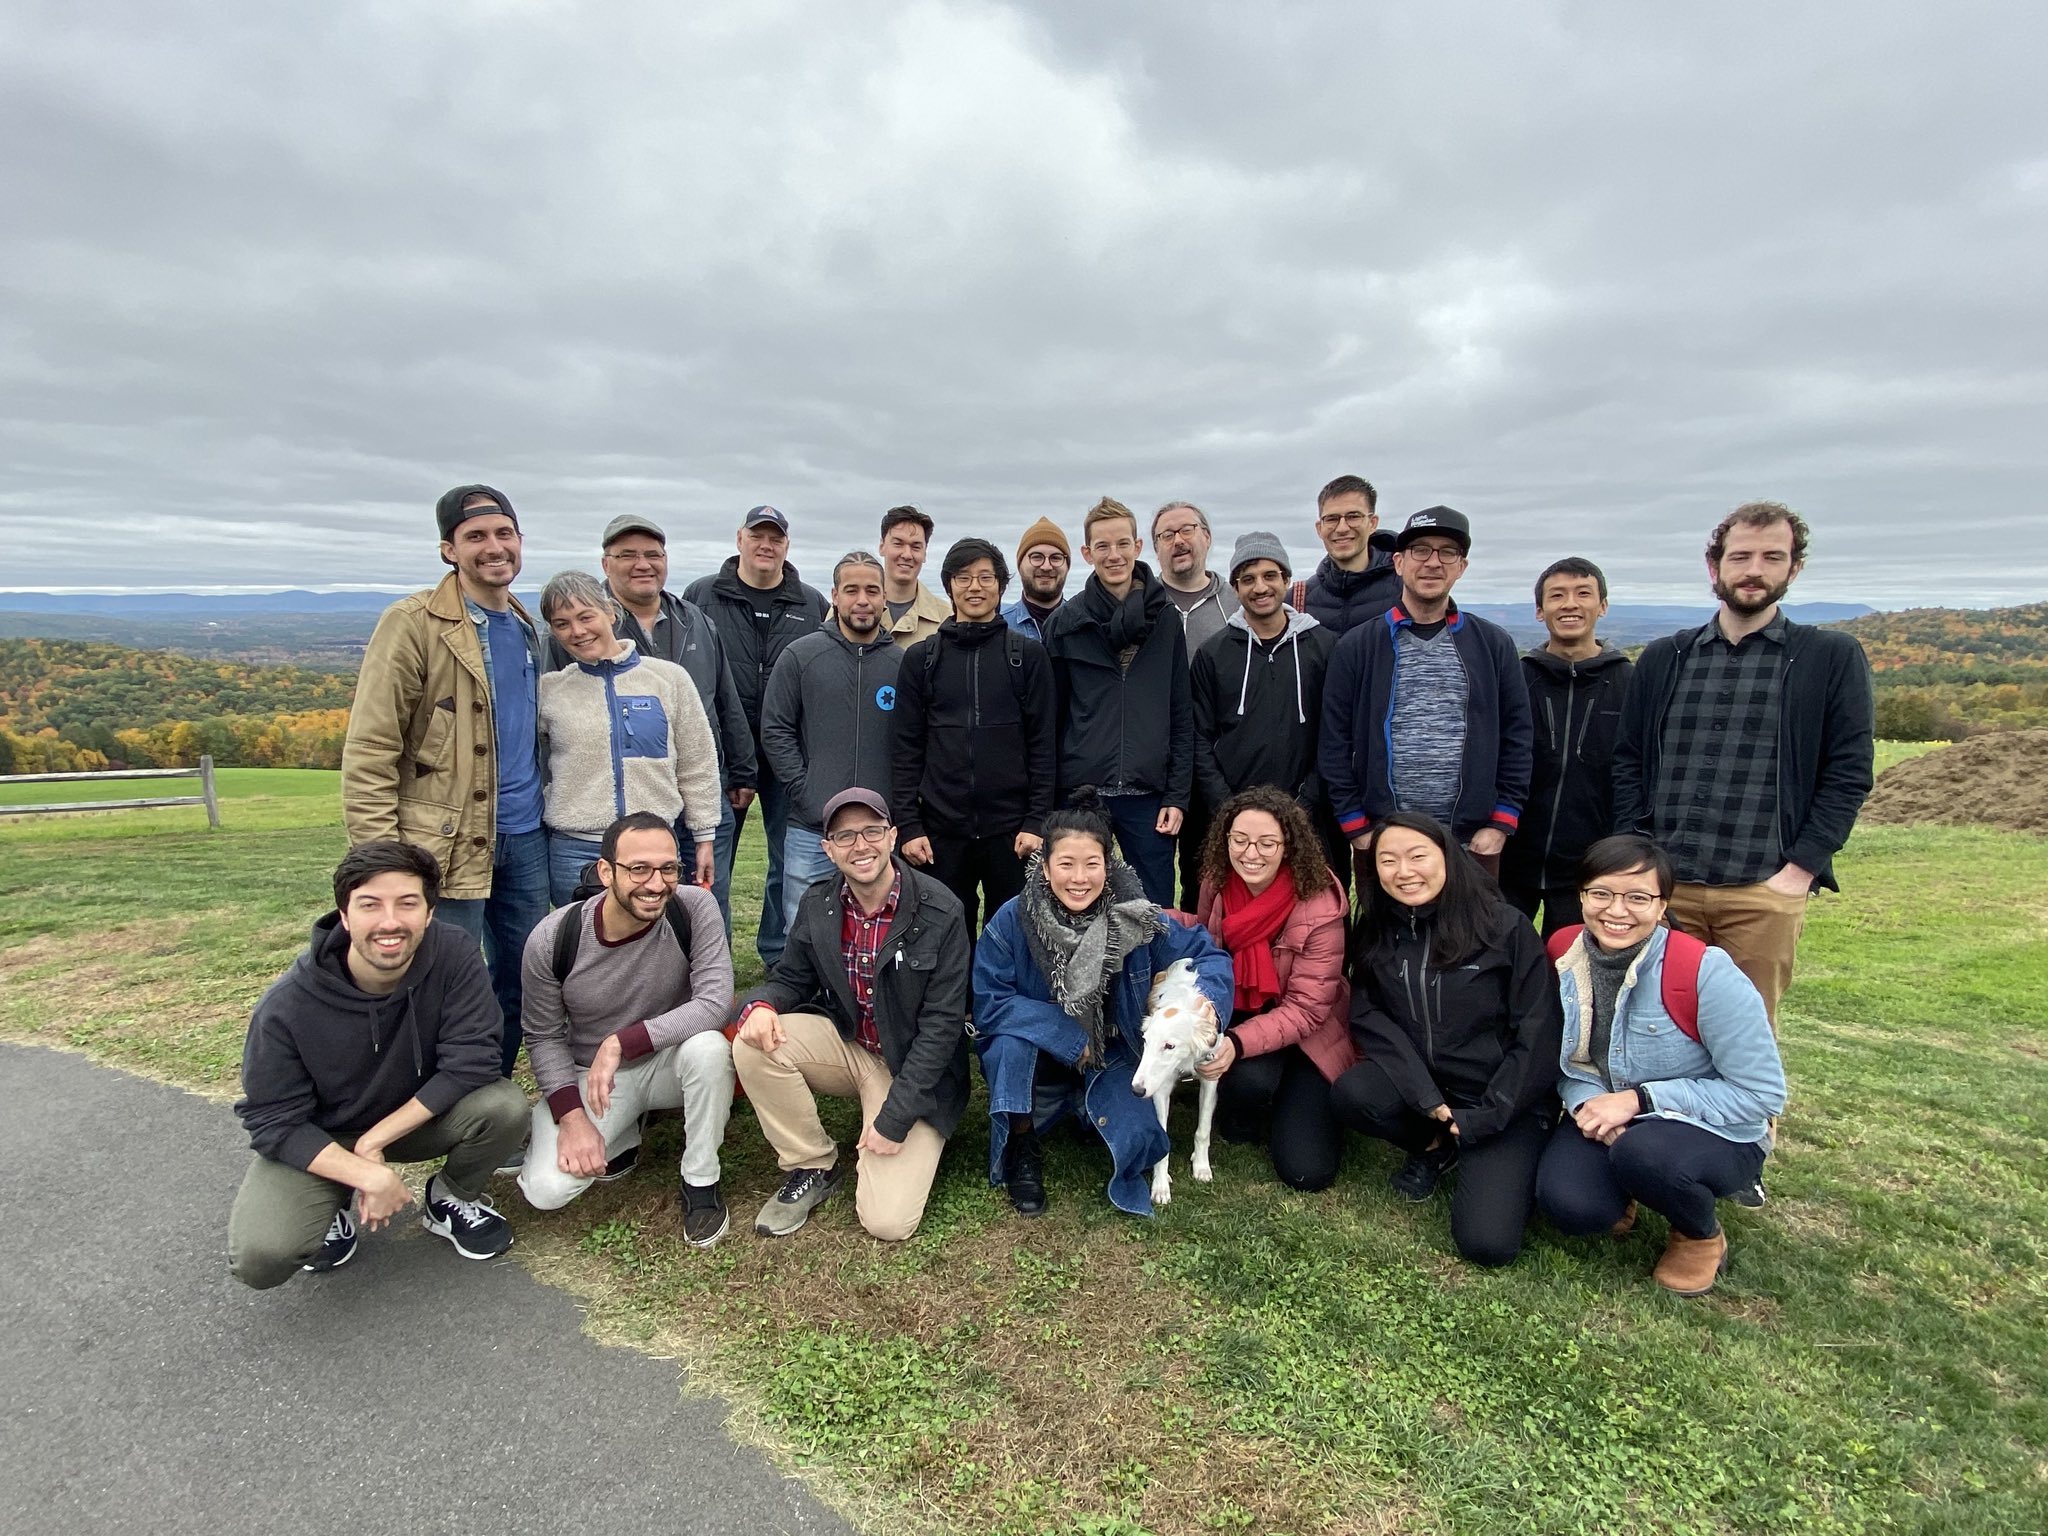 A group photo at the attendees at David Jonathan Ross's open house. Photo taken at Apex Orchards, courtesy of Matthew Rechs